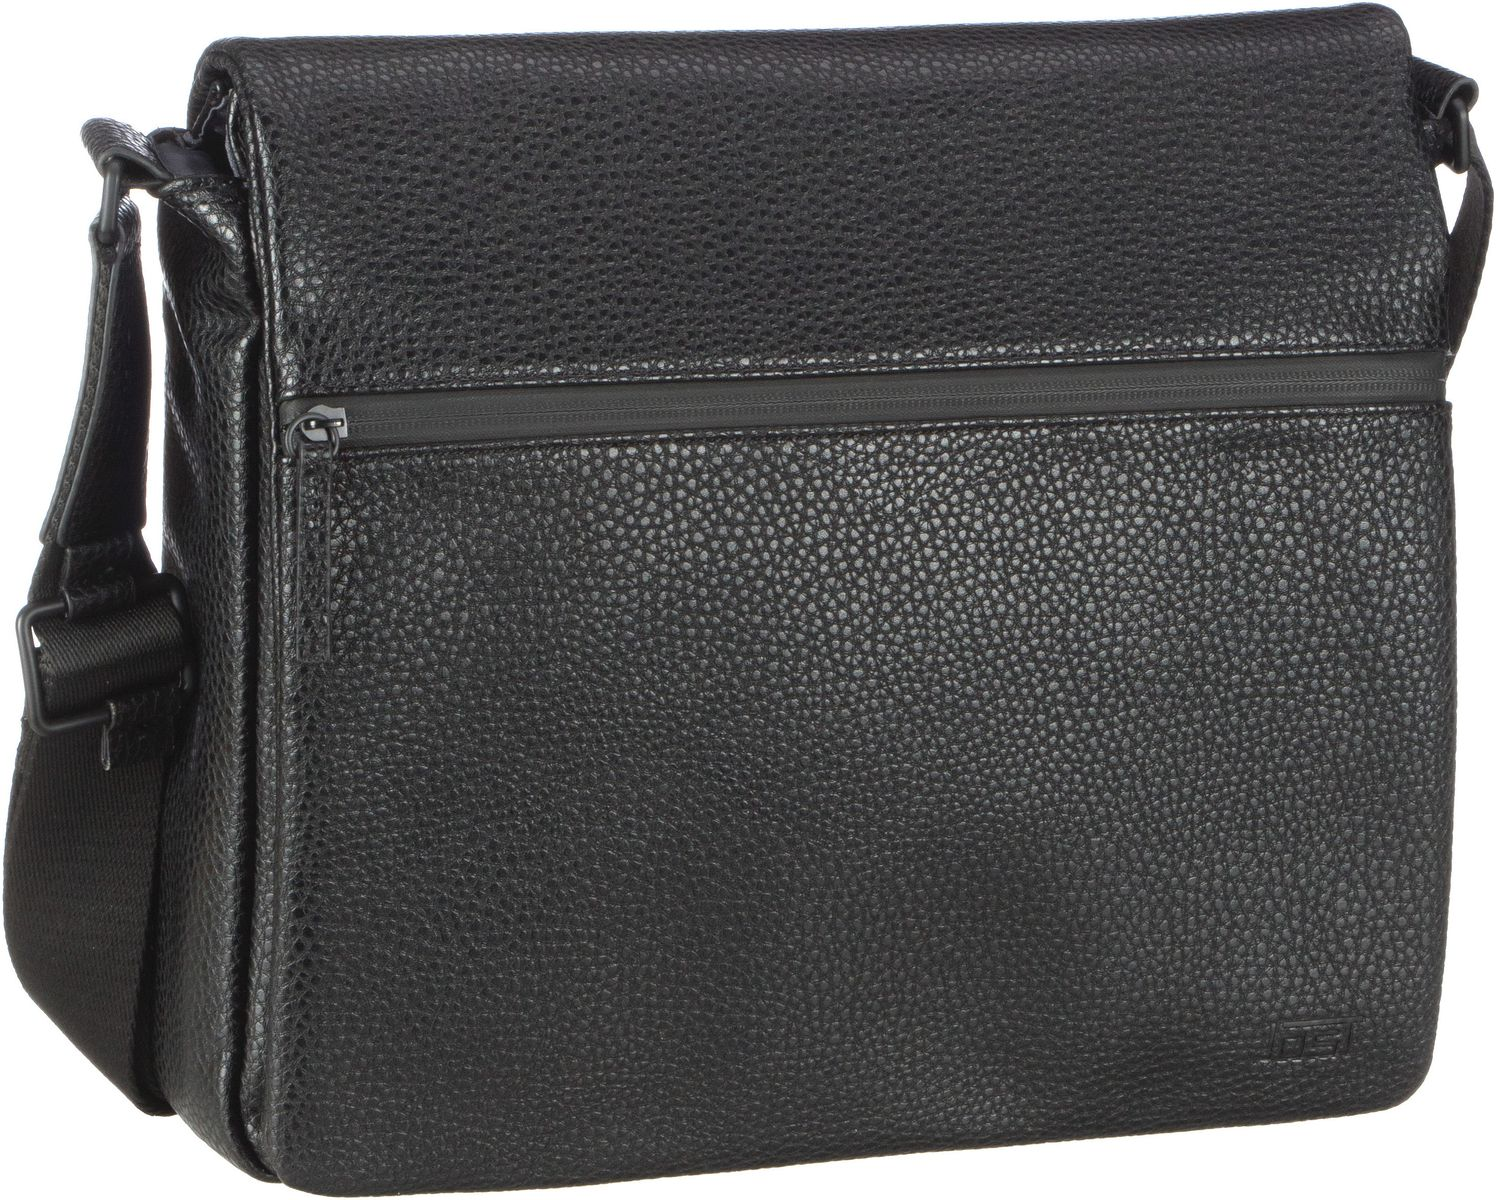 Umhängetasche Oslo 6483 Shoulder Bag M Black